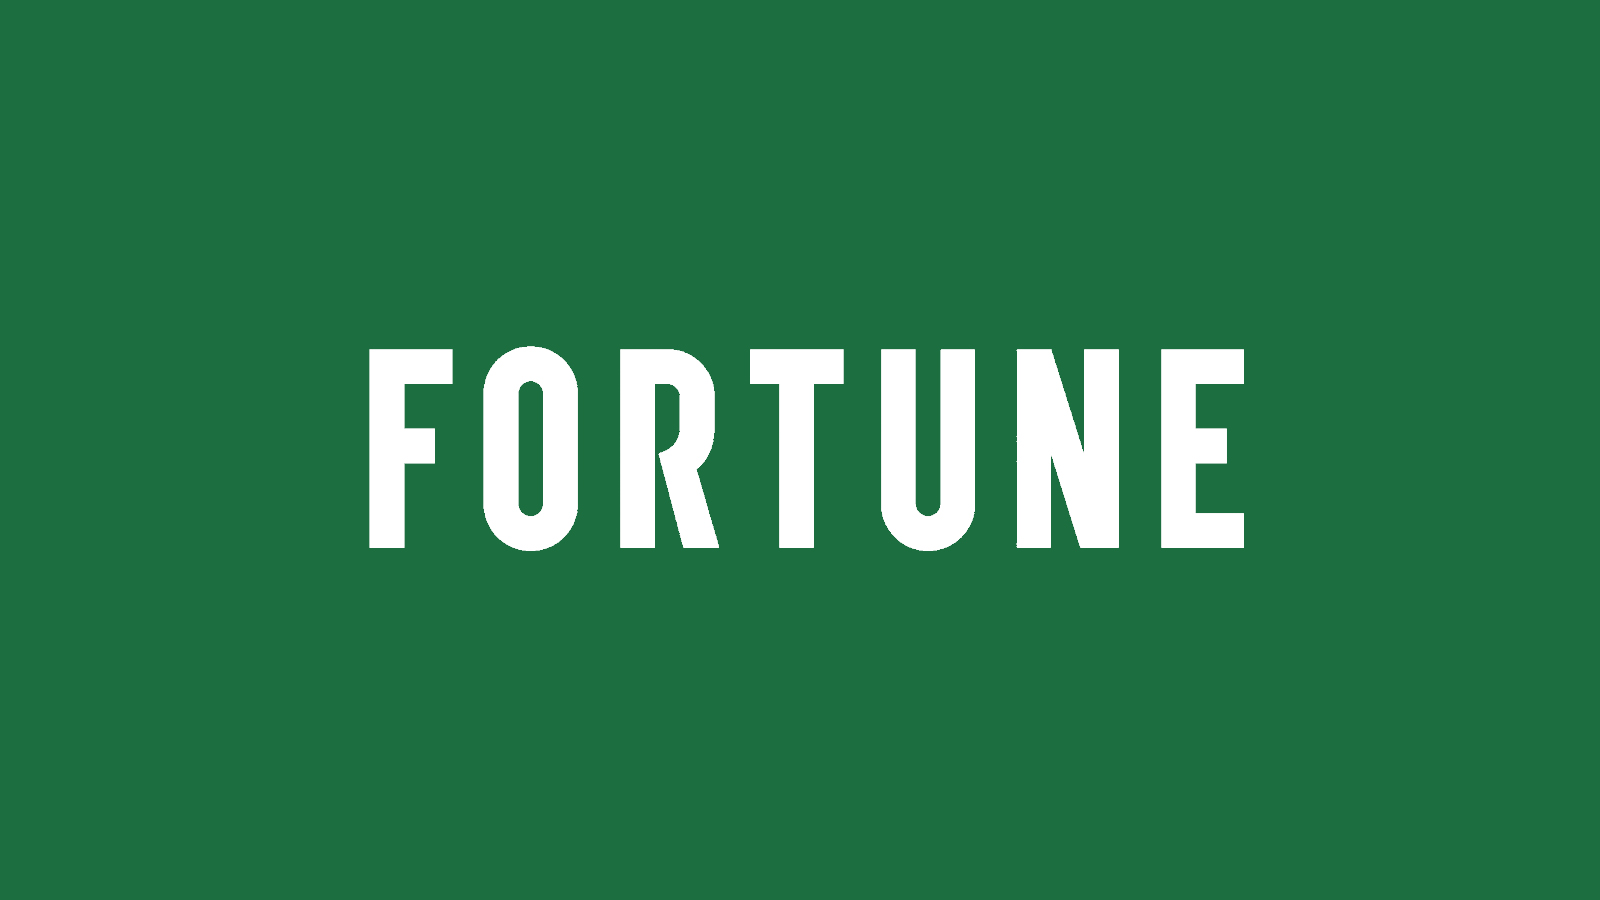 fortune logo icon (green)